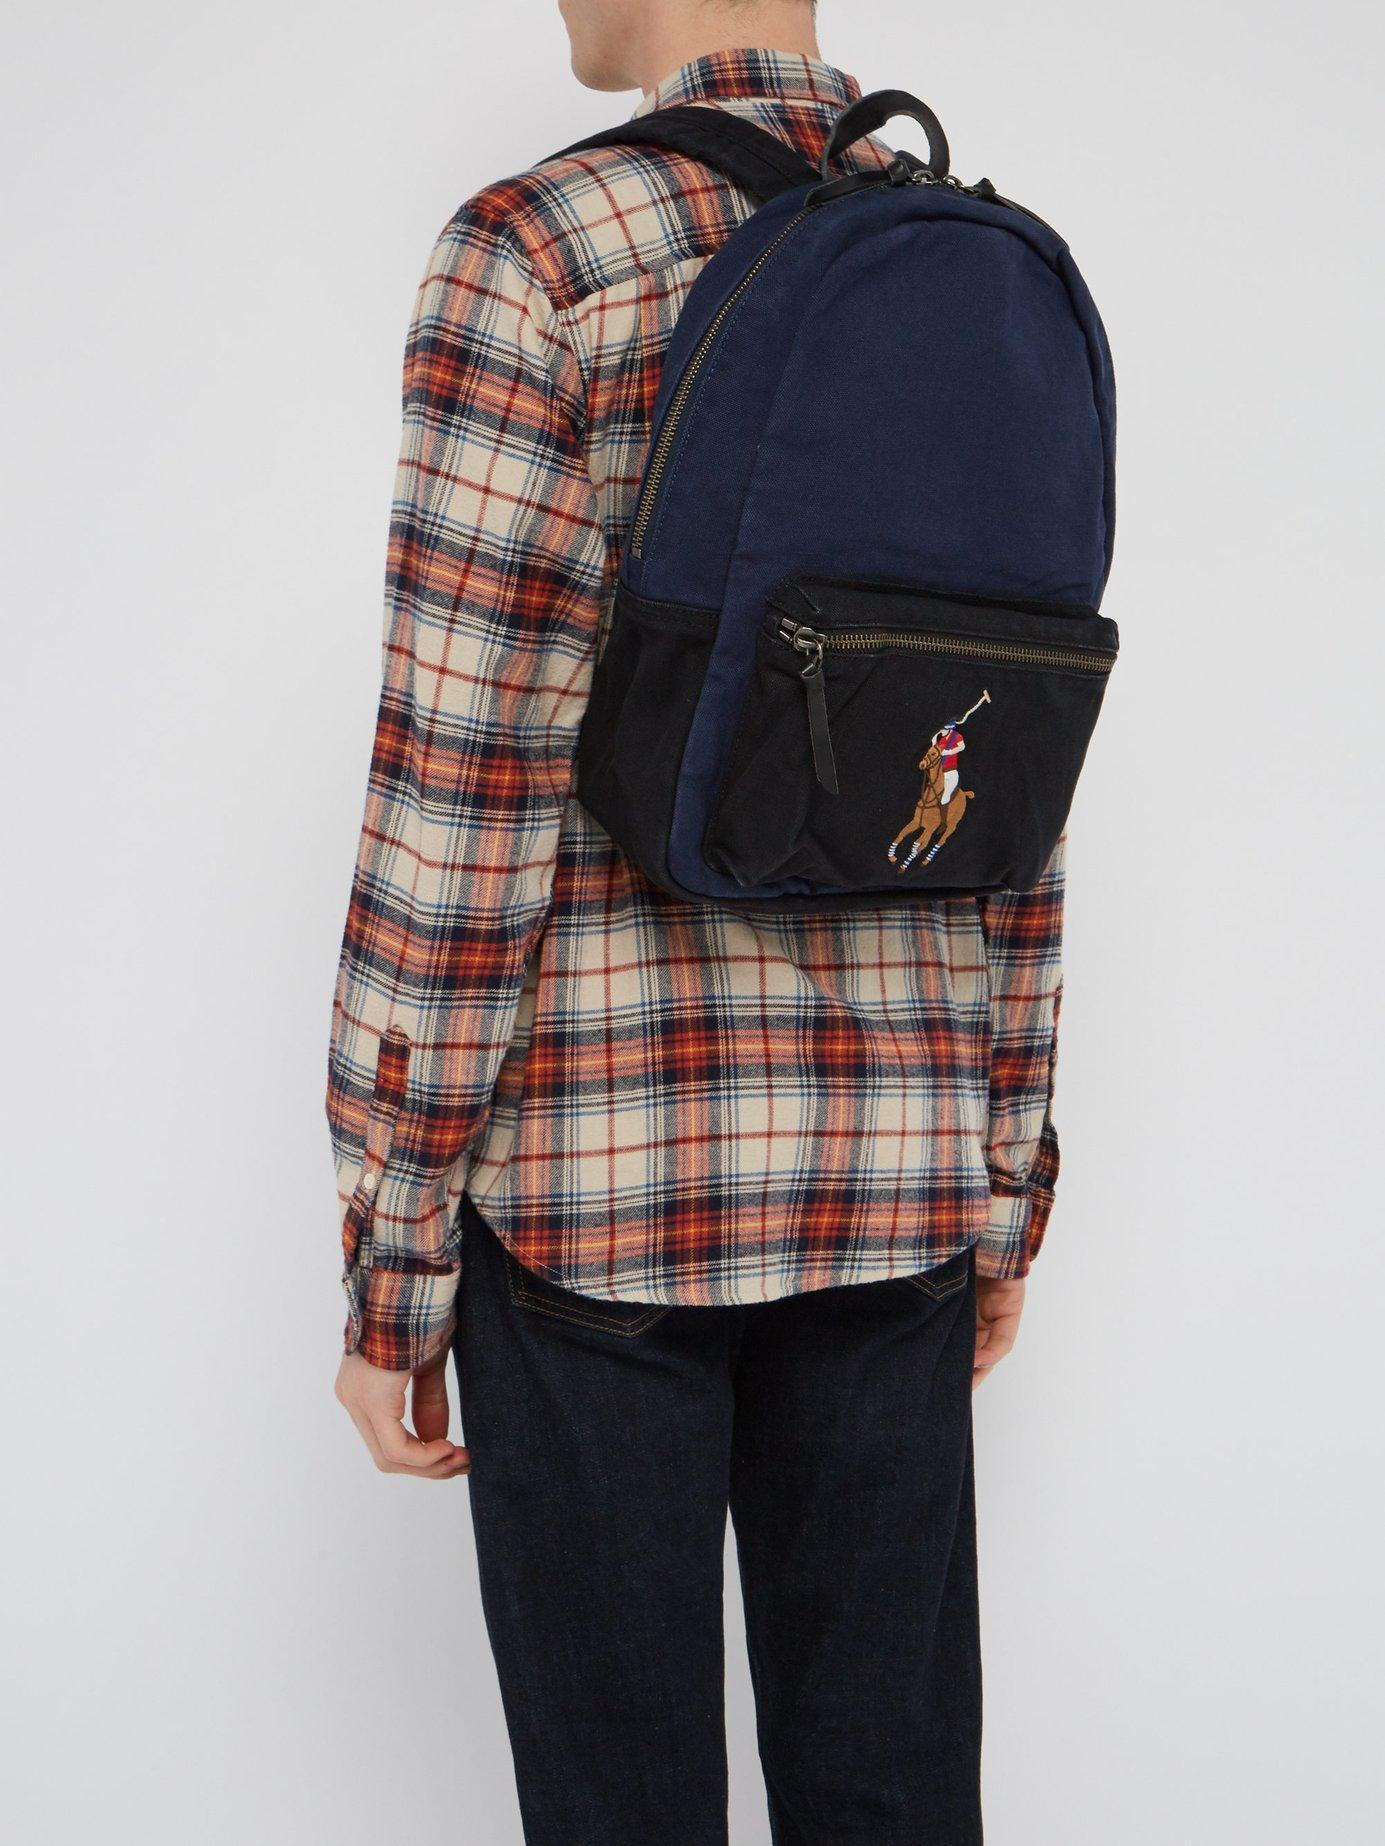 adb43ef597d4 Lyst - Polo Ralph Lauren Logo Embroidered Canvas Backpack in Blue for Men -  Save 37%